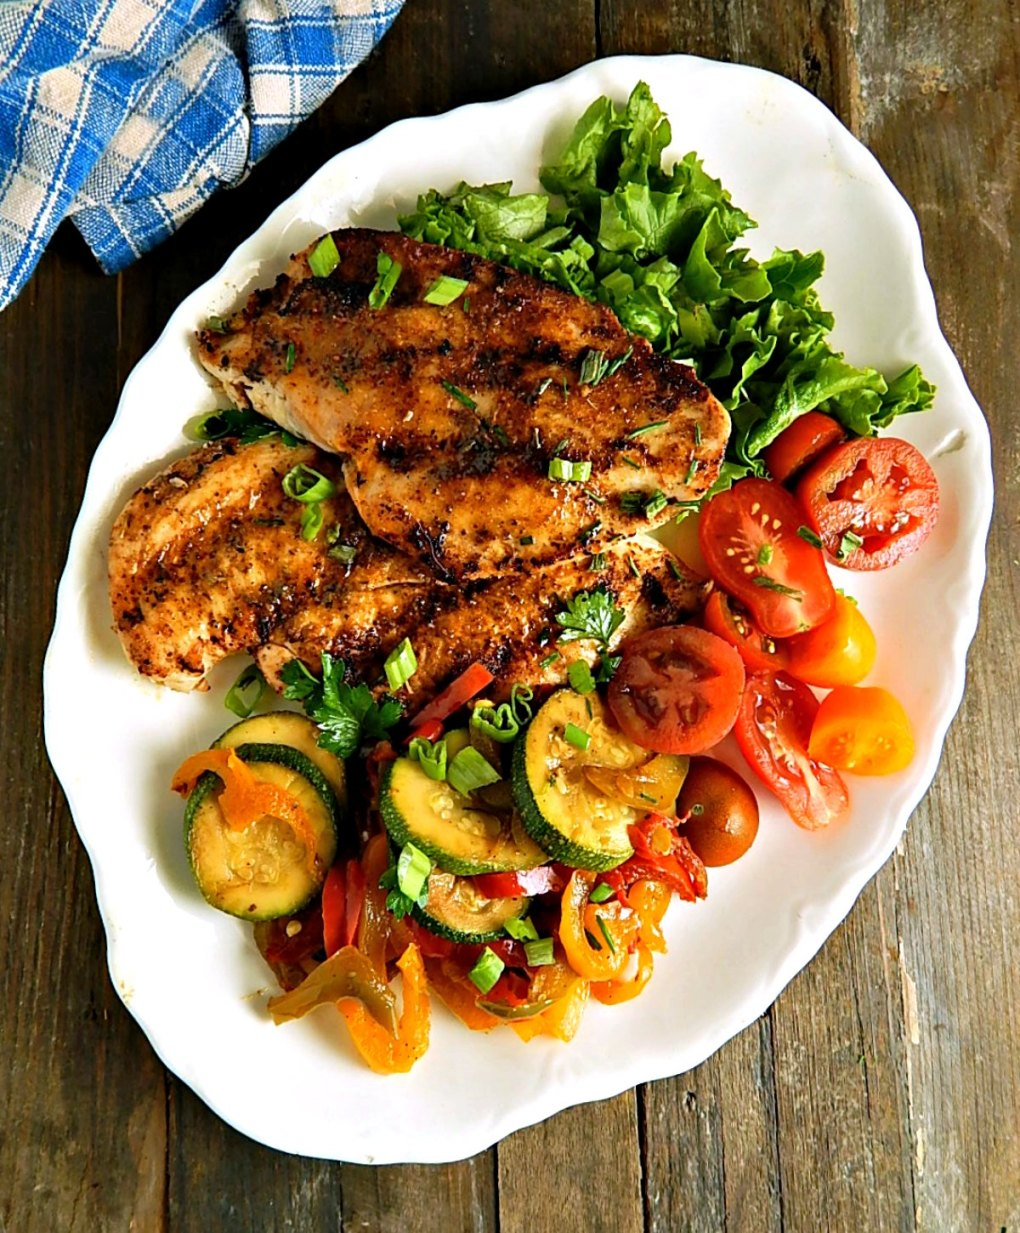 Grilled Blackened Chicken Breasts